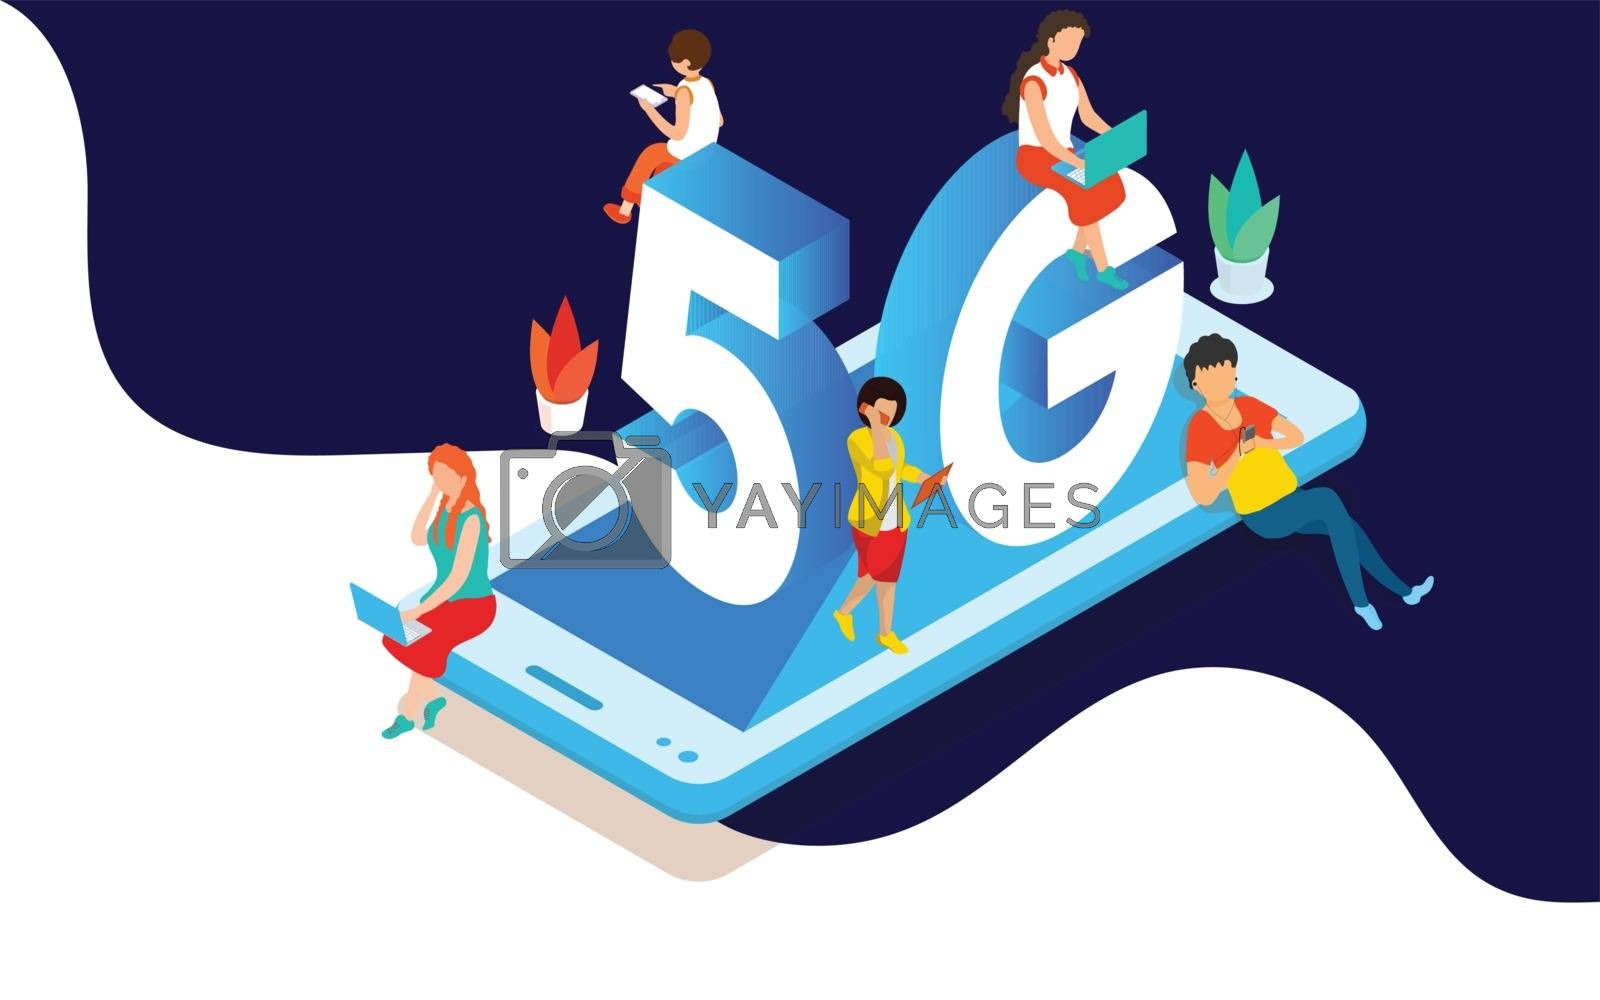 Group of people having fun on social media. Can be use fo landing page, template, ui, web, homepage, poster, banner, flyer design. Isometric 5G network wireless system wifi connection vector illustration concept.